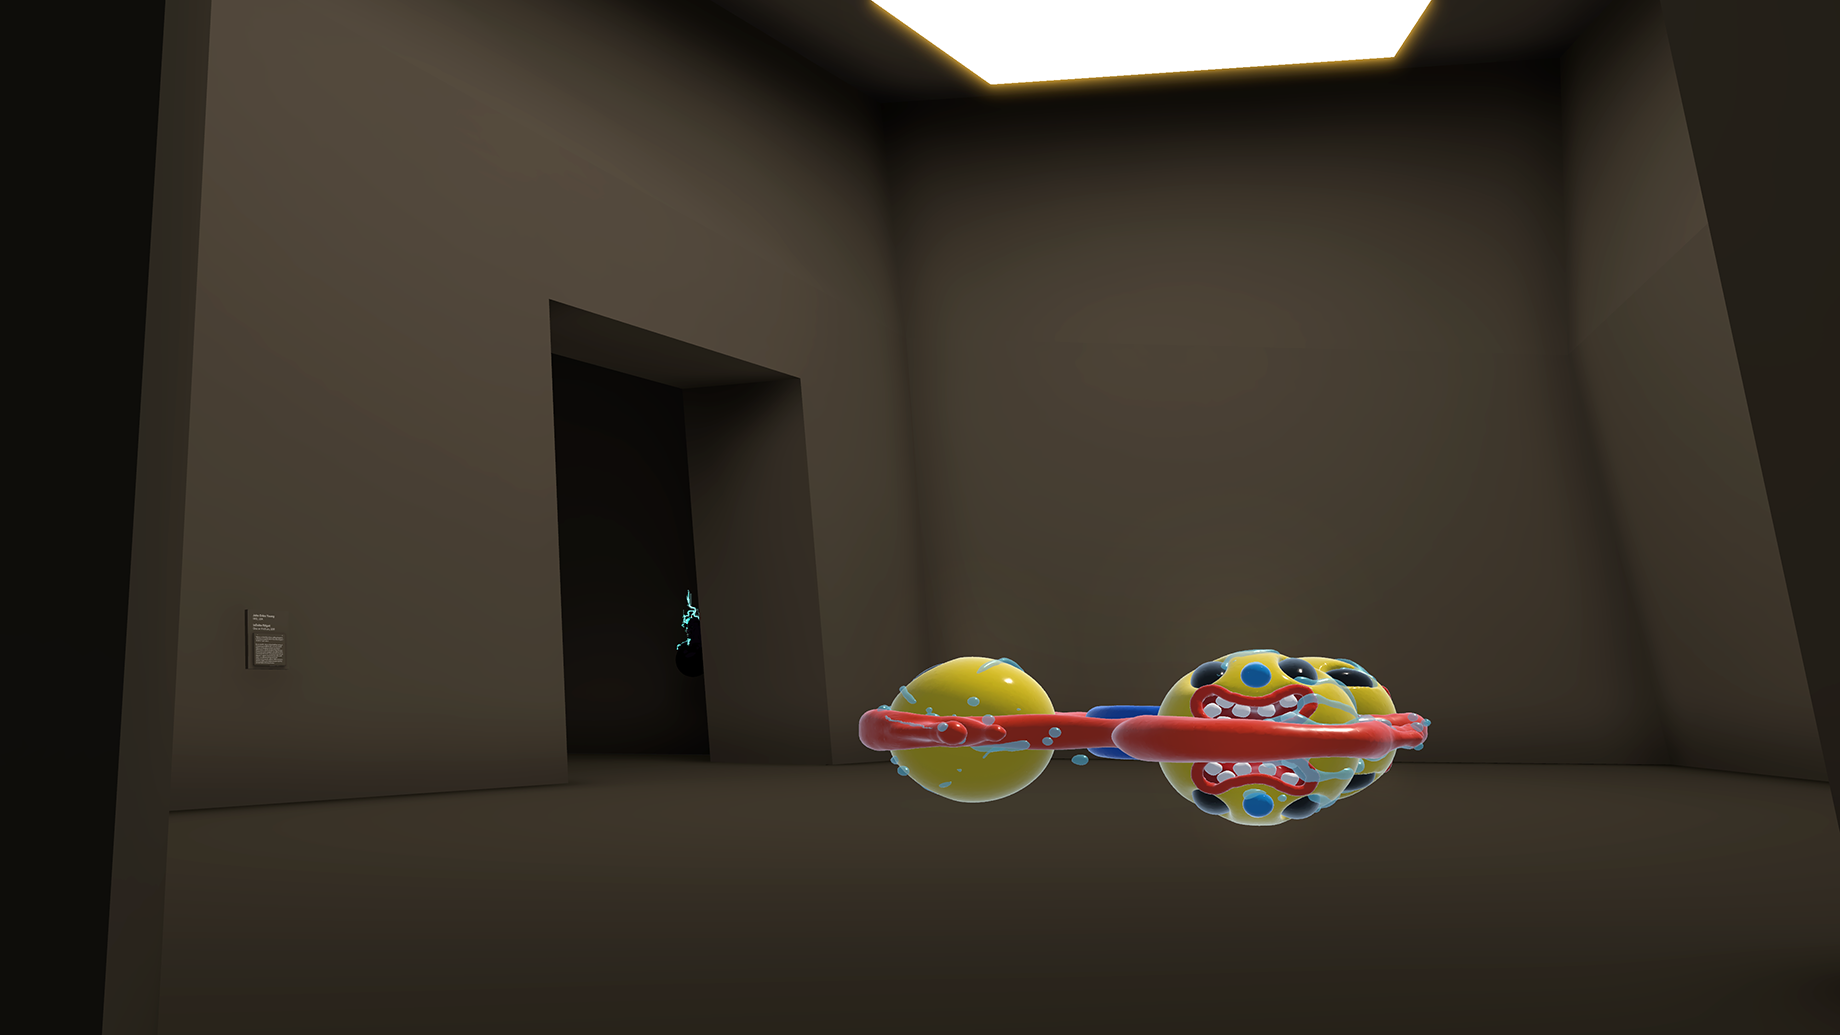 An exhibit featuring  Infinite Fidget  (2019) by John Orion Young in Oculus Medium